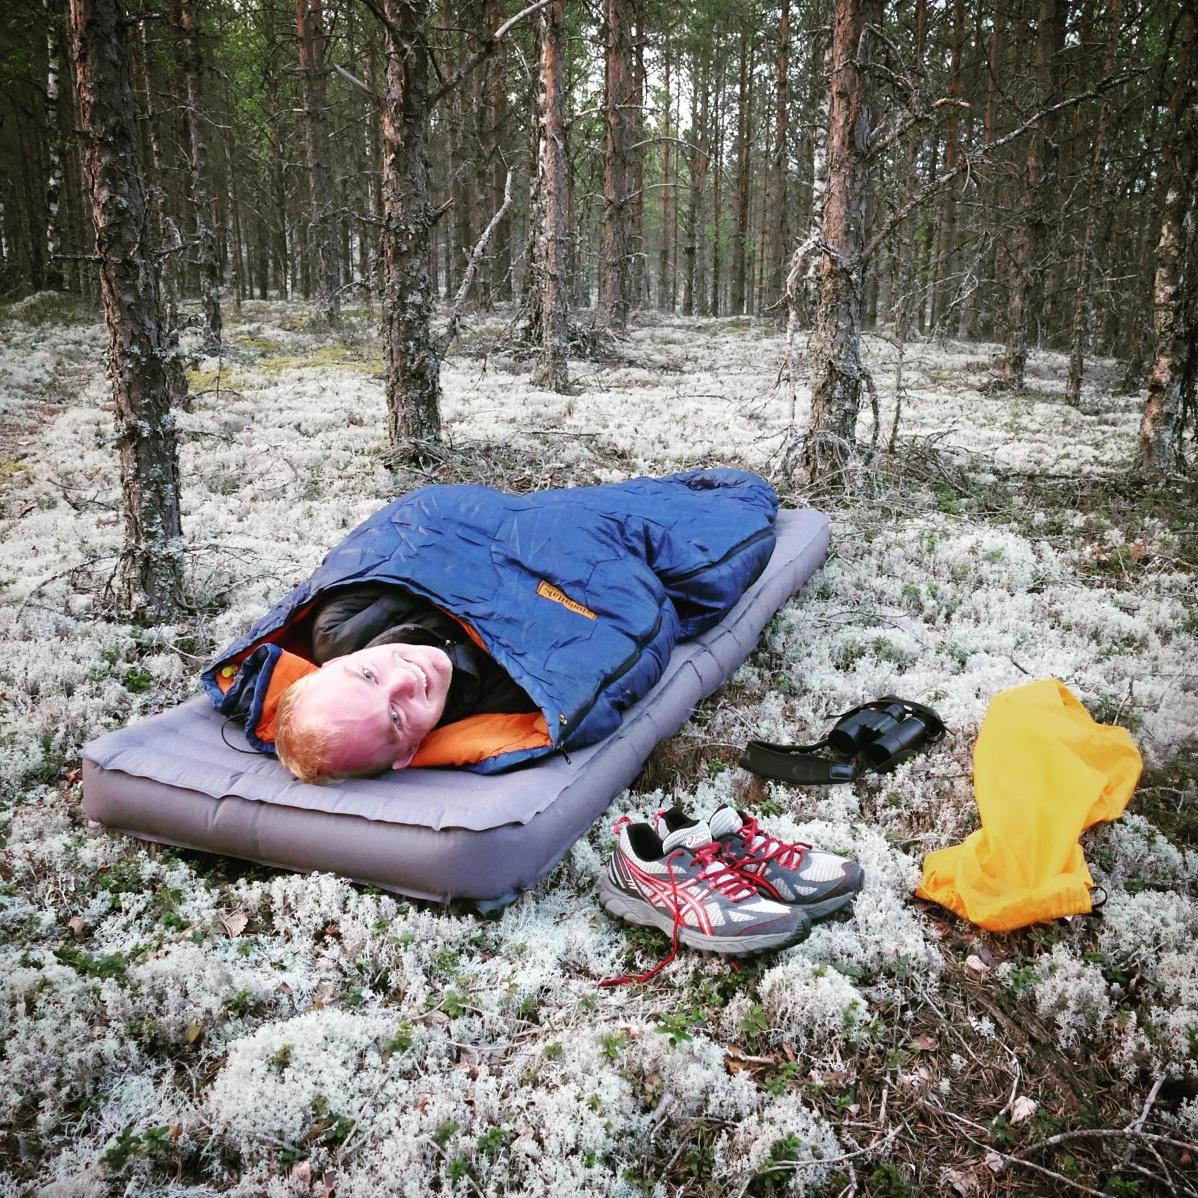 Noah settles in for the night in the pine forest. Noah Strycker